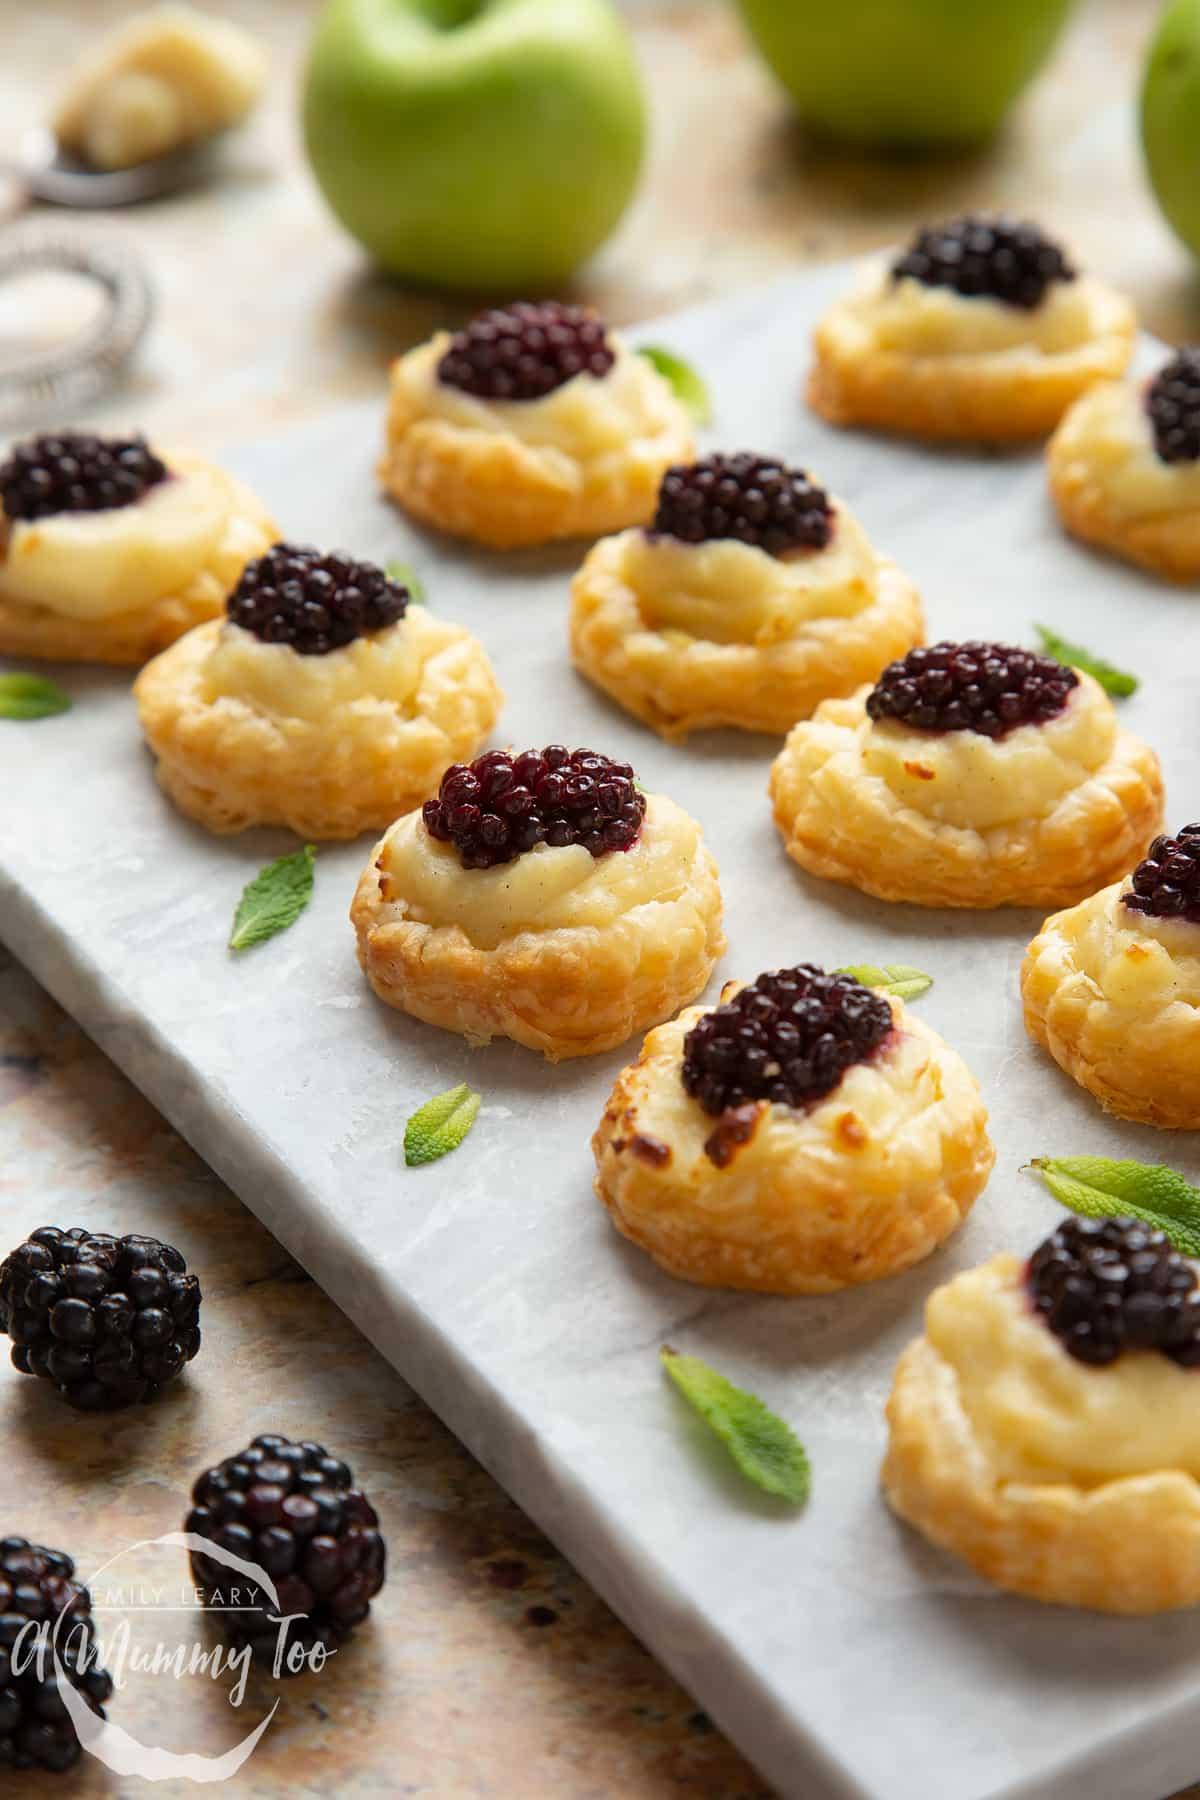 Blackberry tartlets comprised of a small puff pastry disc topped with sliced apple, pastry cream and a blackberry sit on a marble board with tiny mint leaves scattered around them.